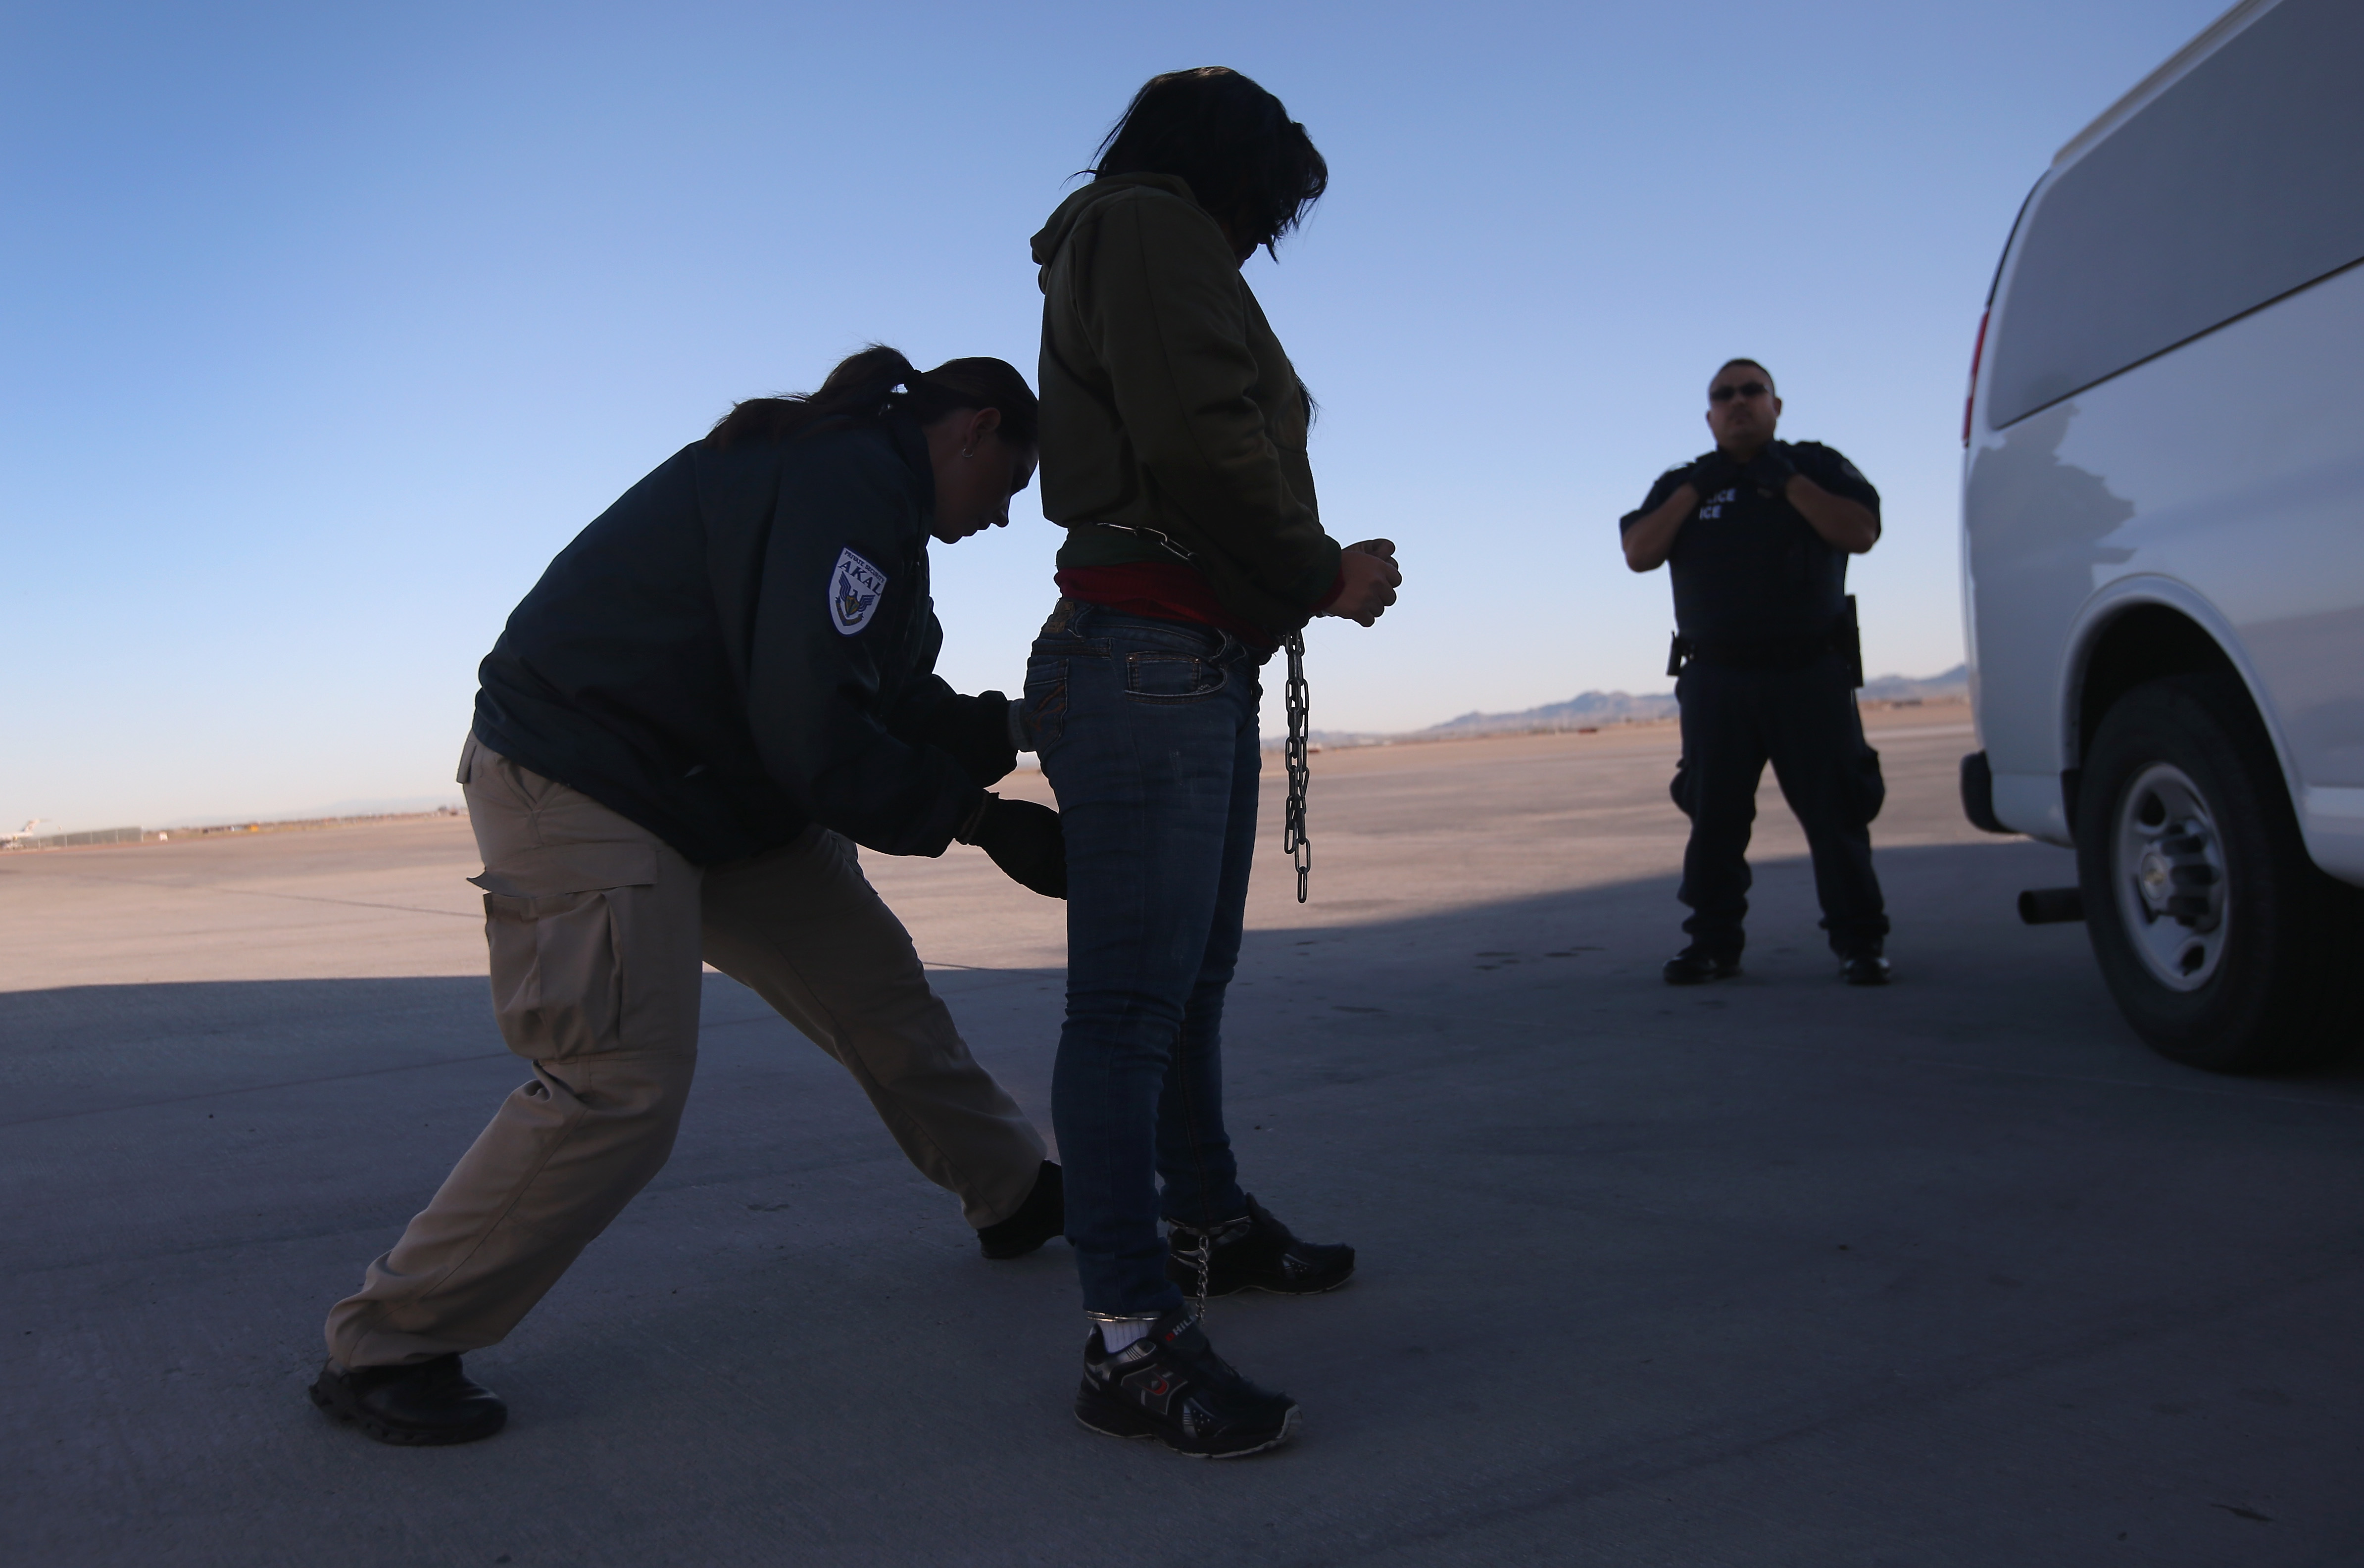 A security contractor frisks a female immigration detainee from Honduras ahead of a deportation flight to San Pedro Sula, Honduras on February 28, 2013 in Mesa, Arizona. (Getty Images)